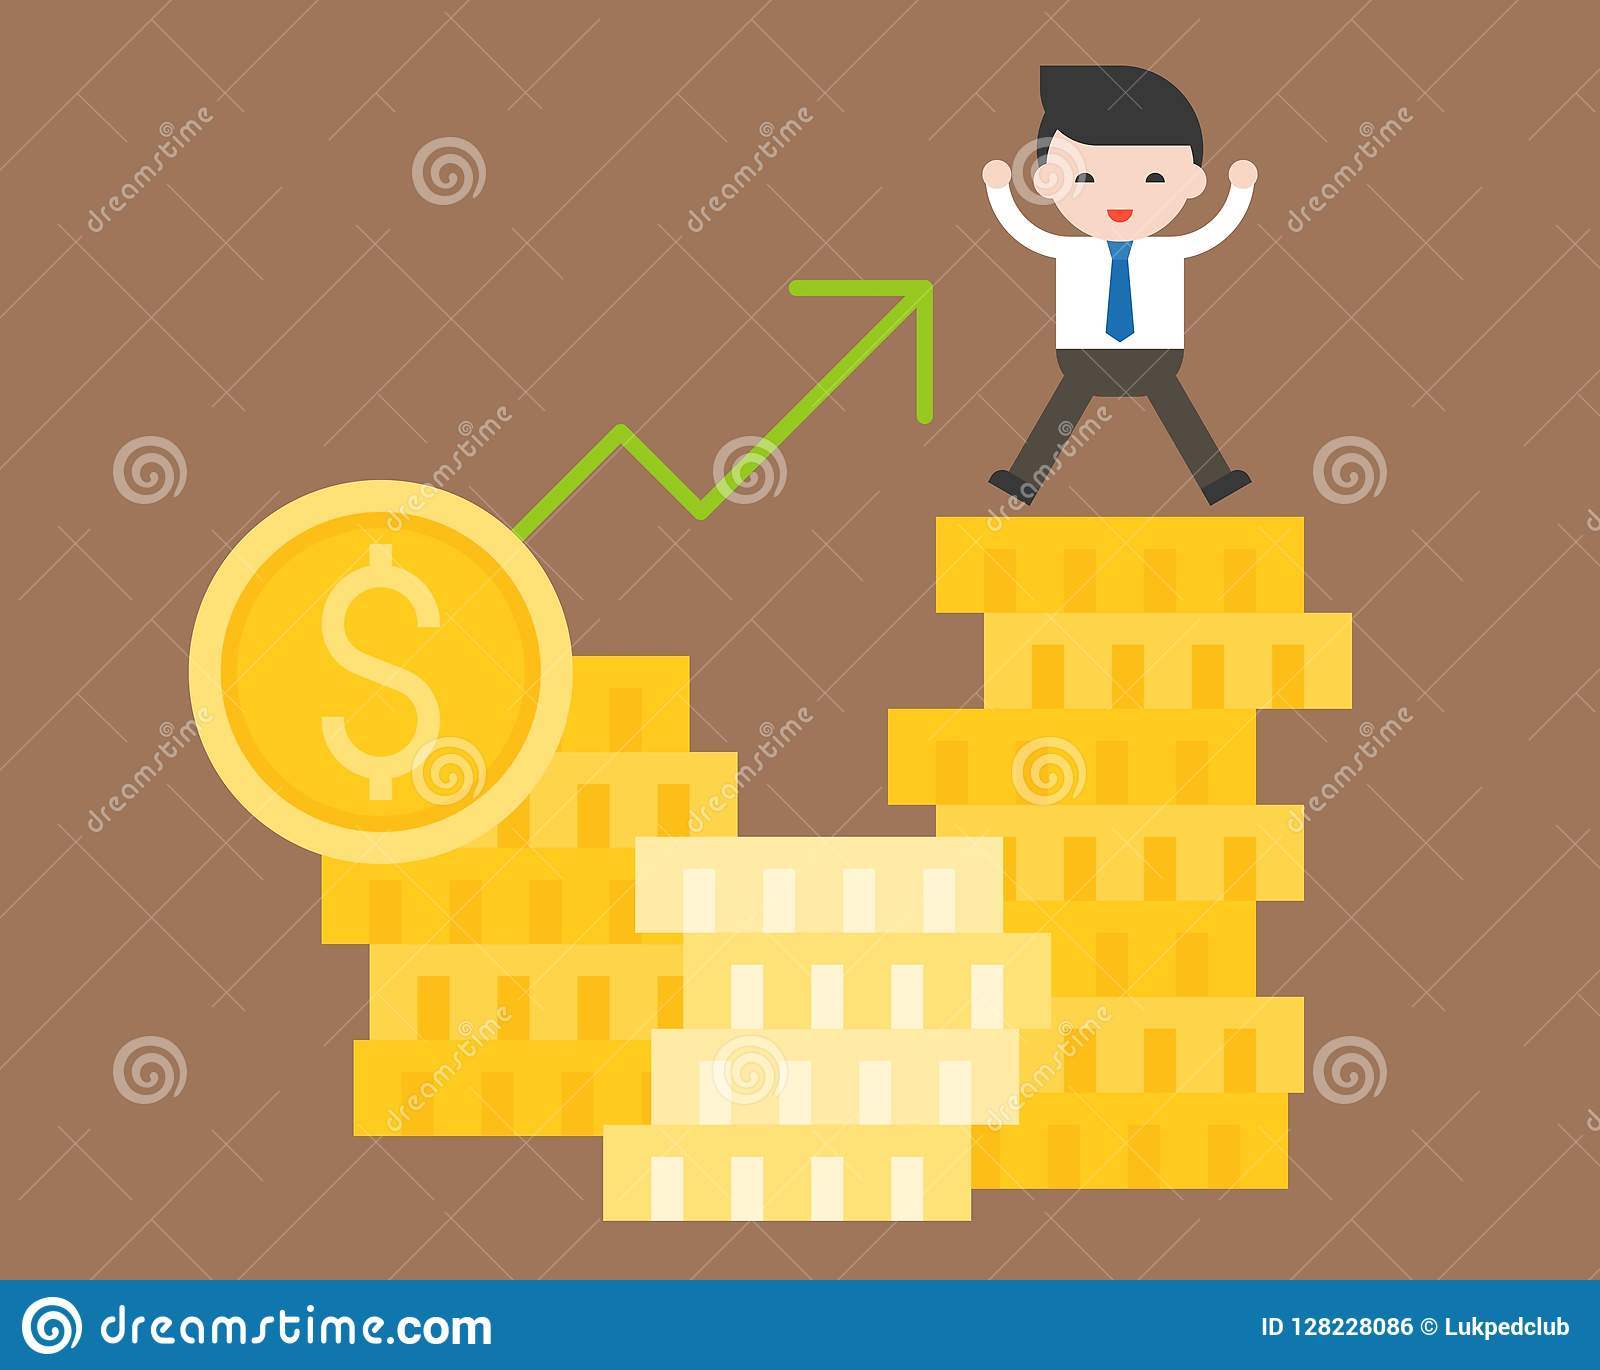 cute business man stand on stack of gold coin, business situation concept, riches from investment dollar currency price rising